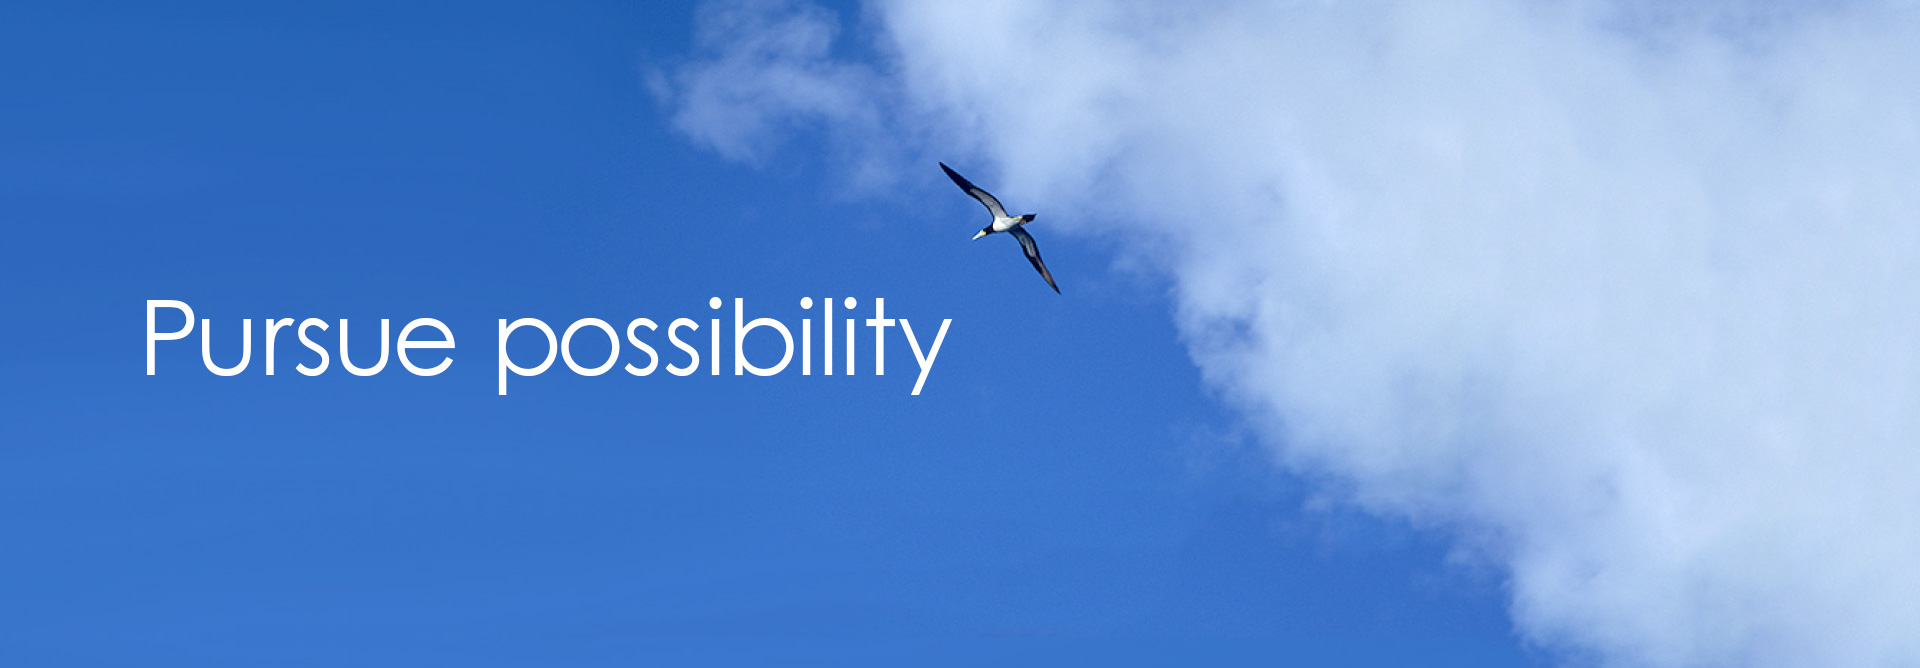 Pursue possibility.